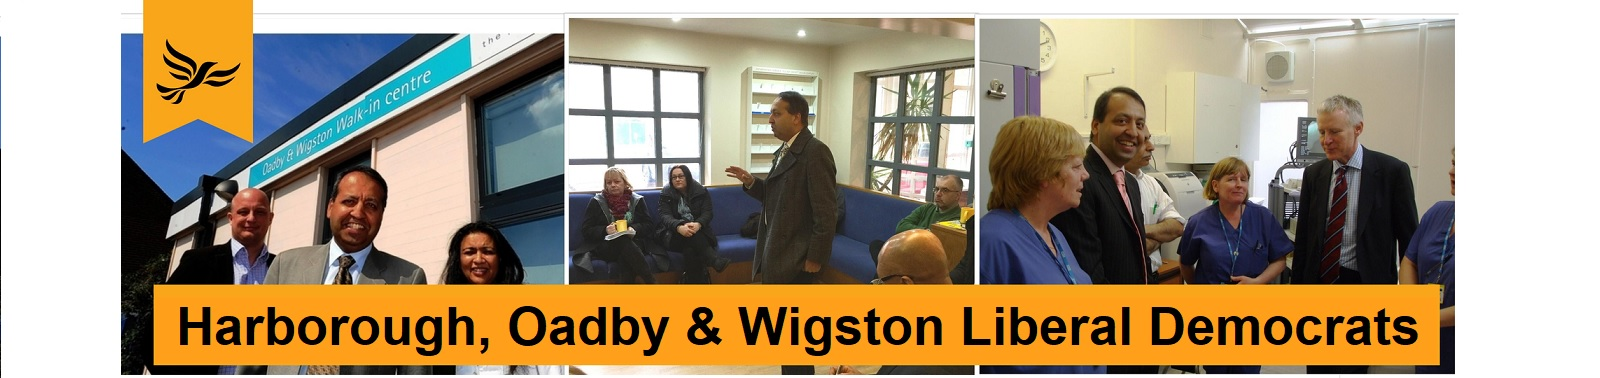 Harborough, Oadby & Wigston Liberal Democrats